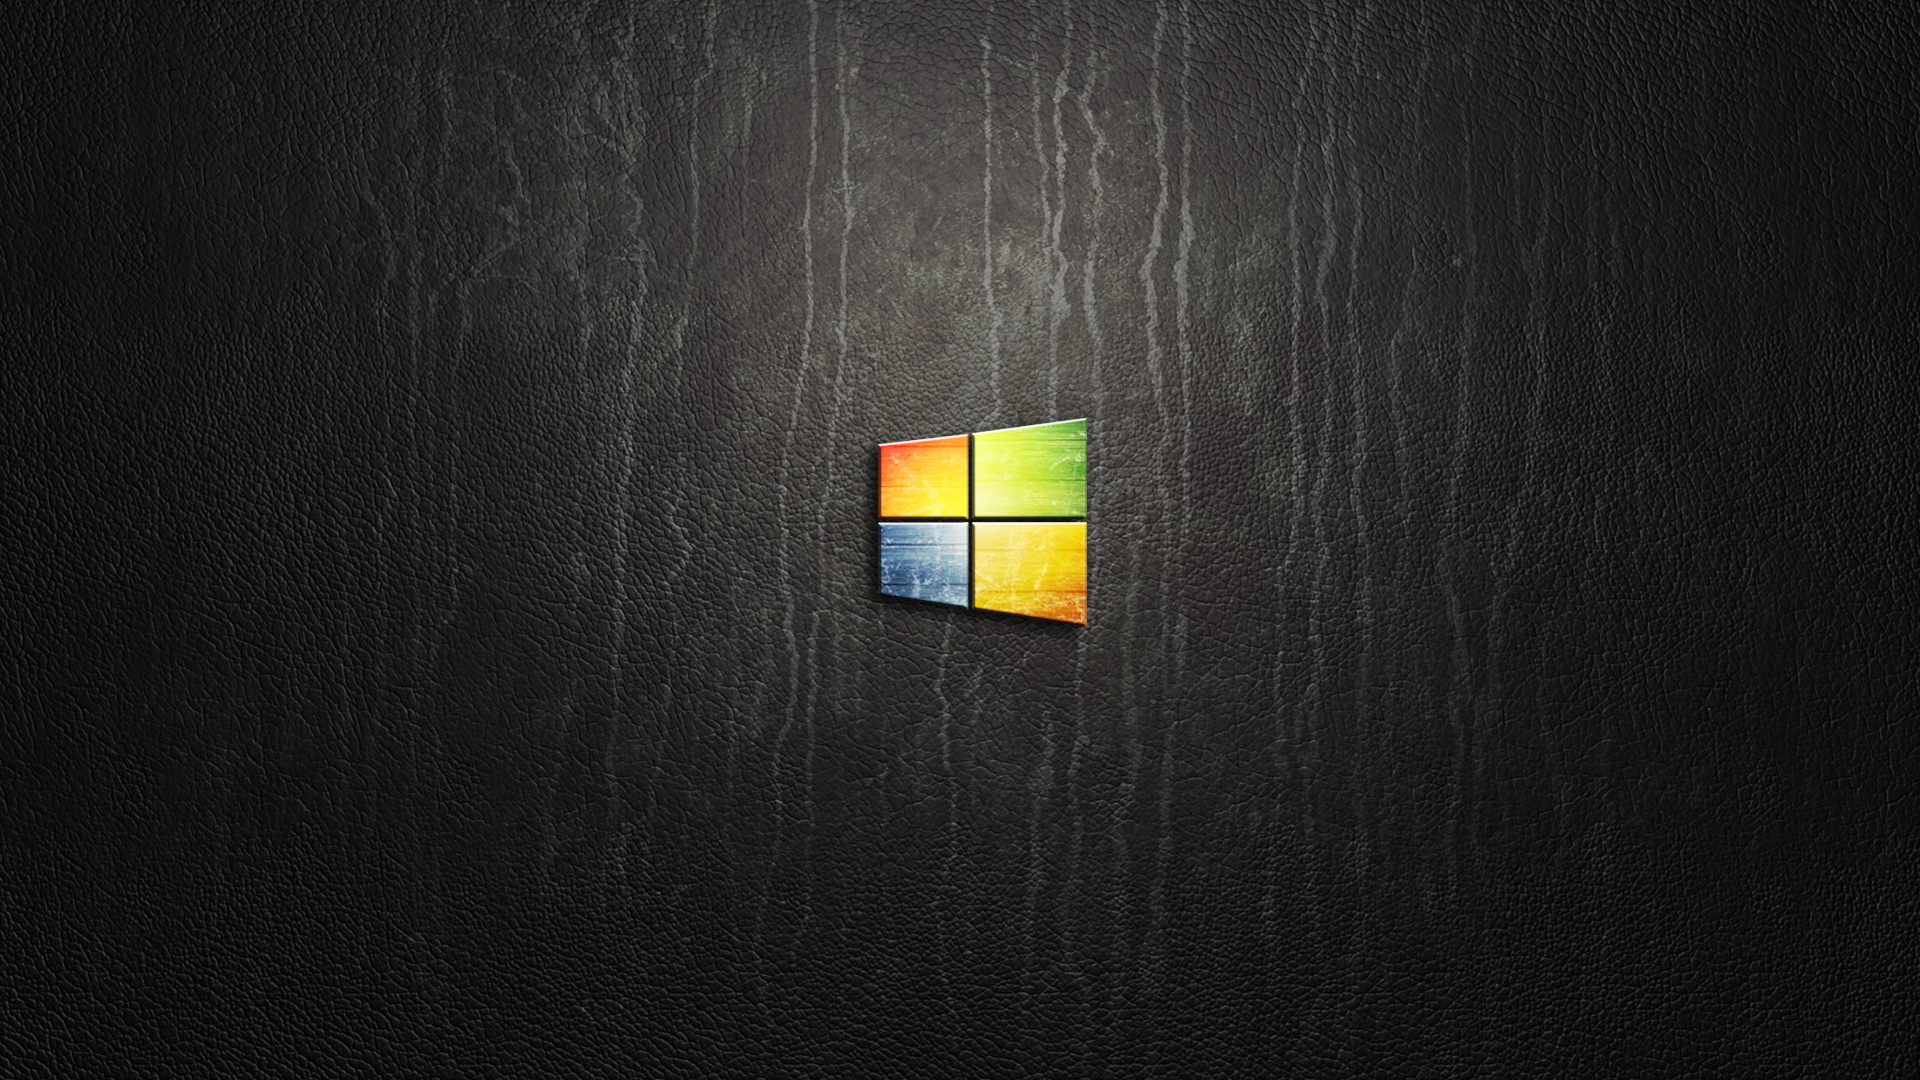 Wallpaper Windows 10 4k Posted By Christopher Mercado